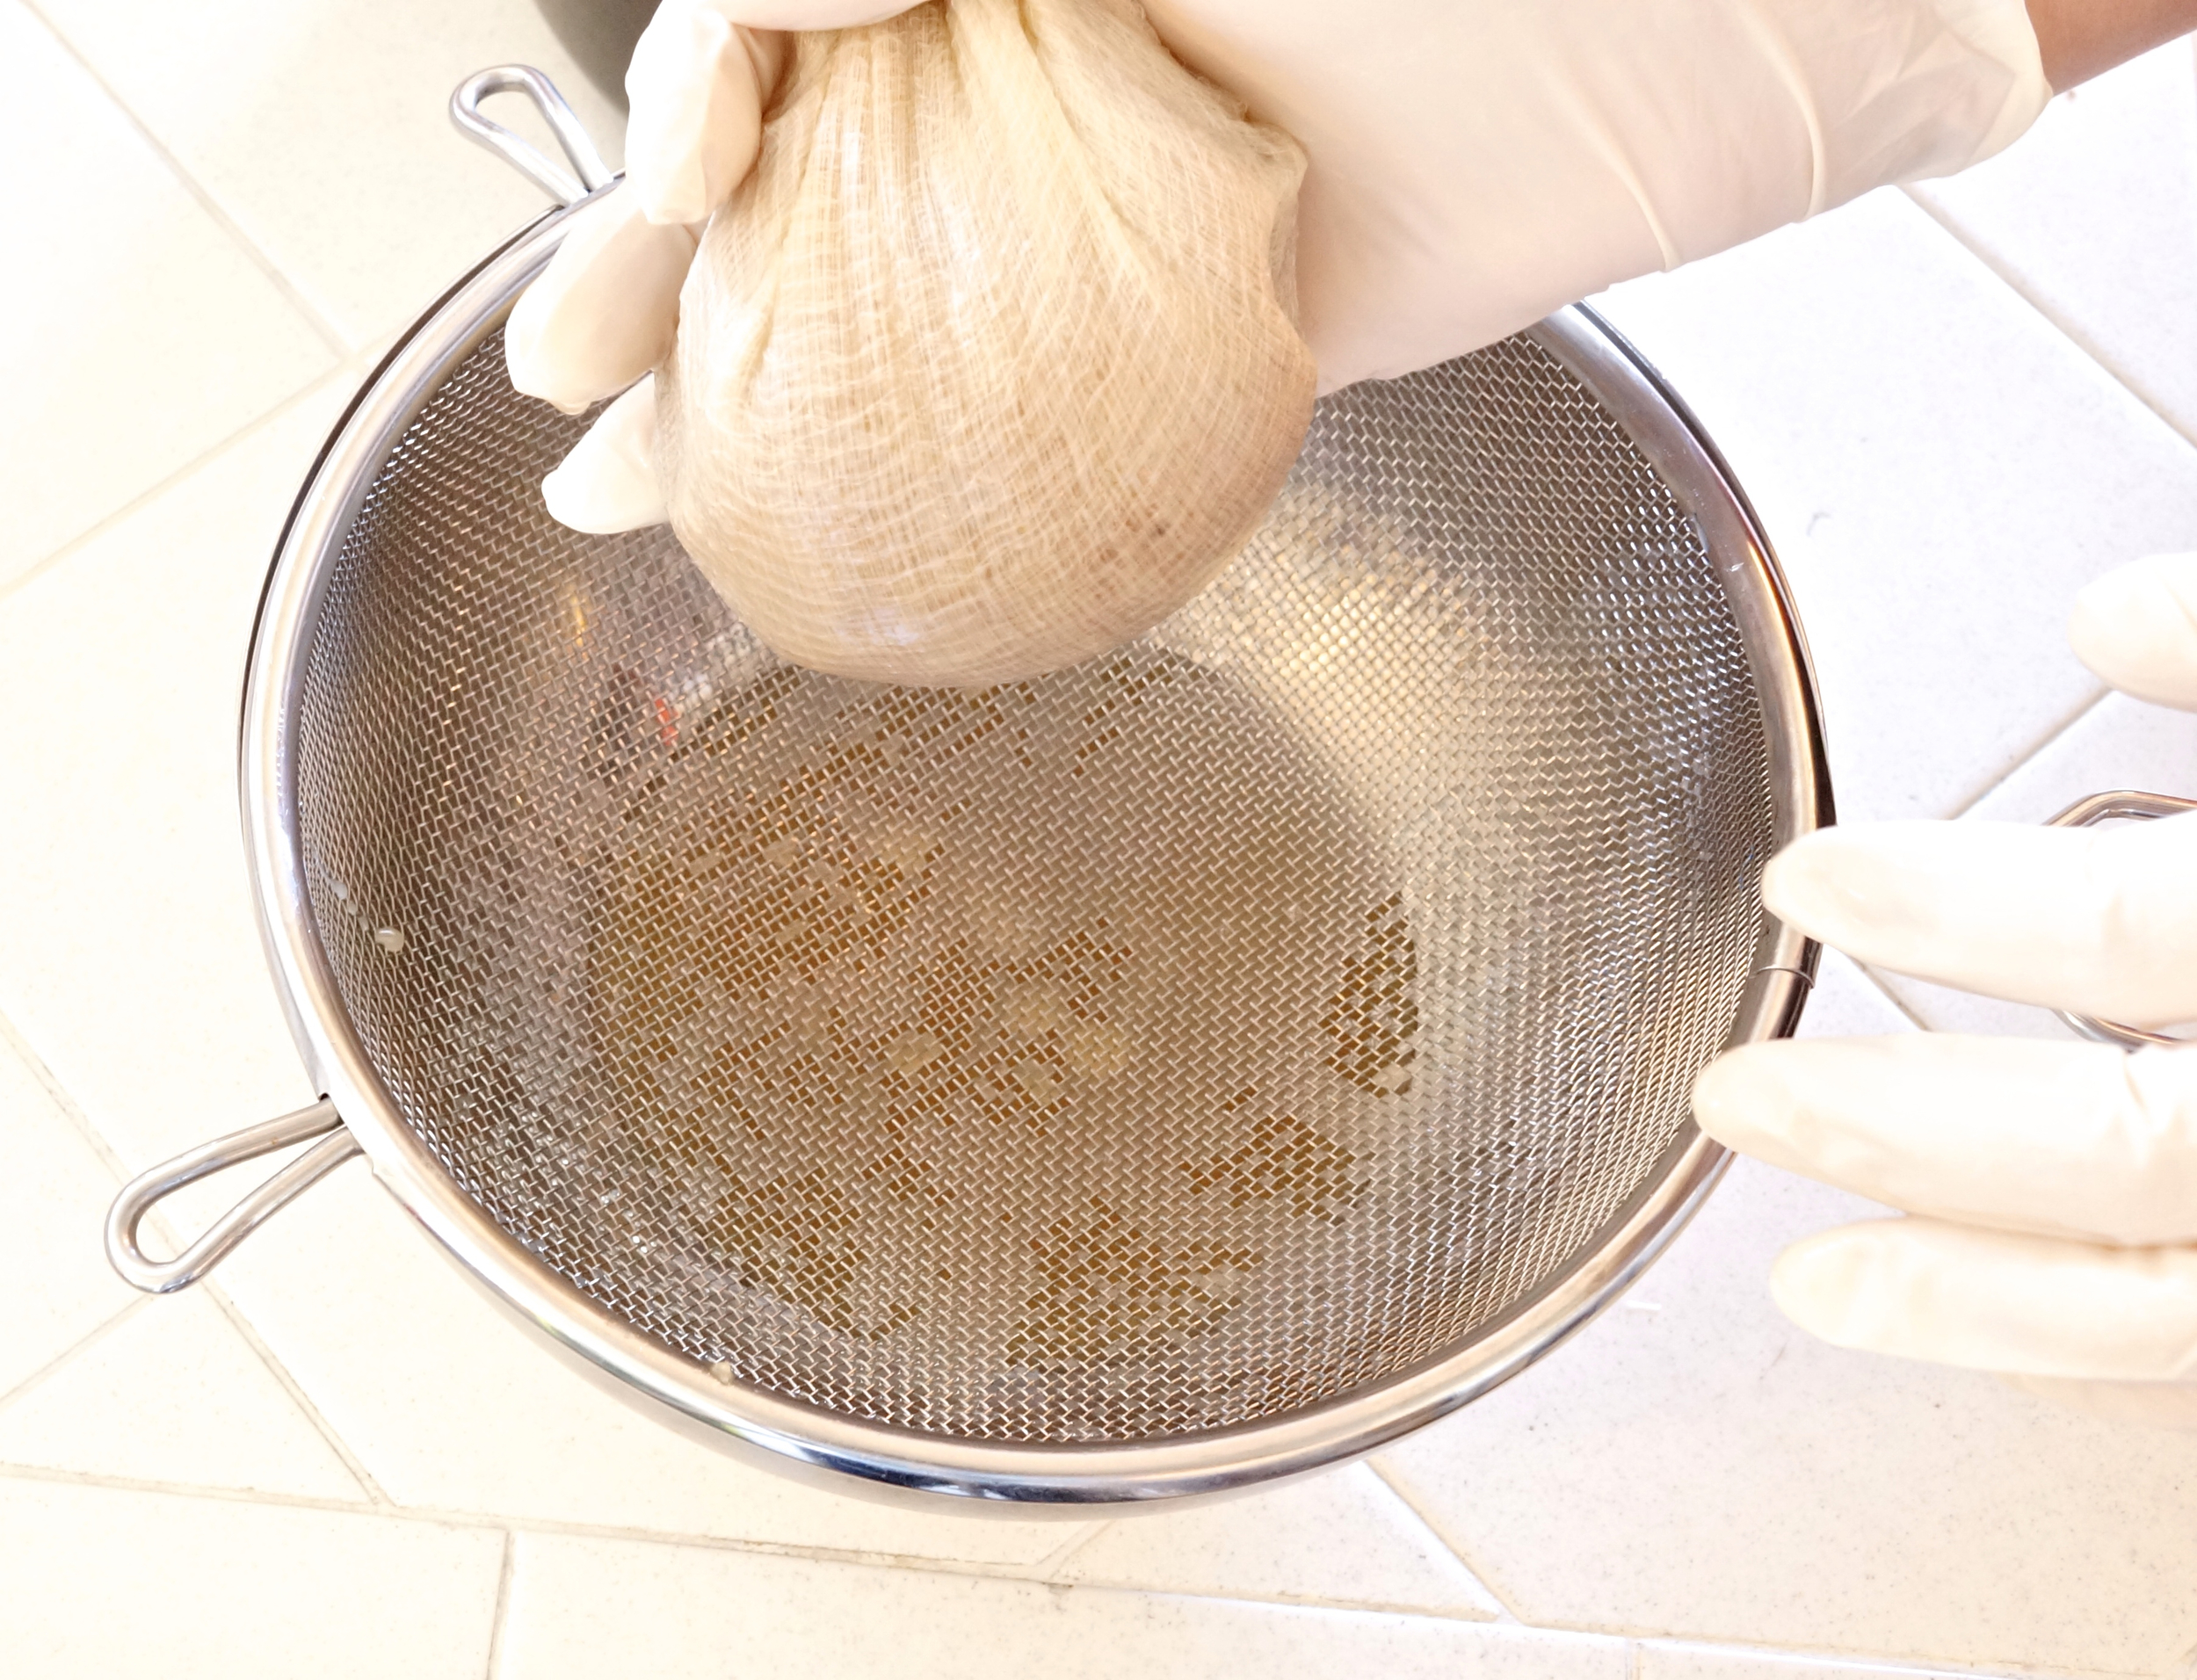 almond-mixture-cheesecloth.jpg